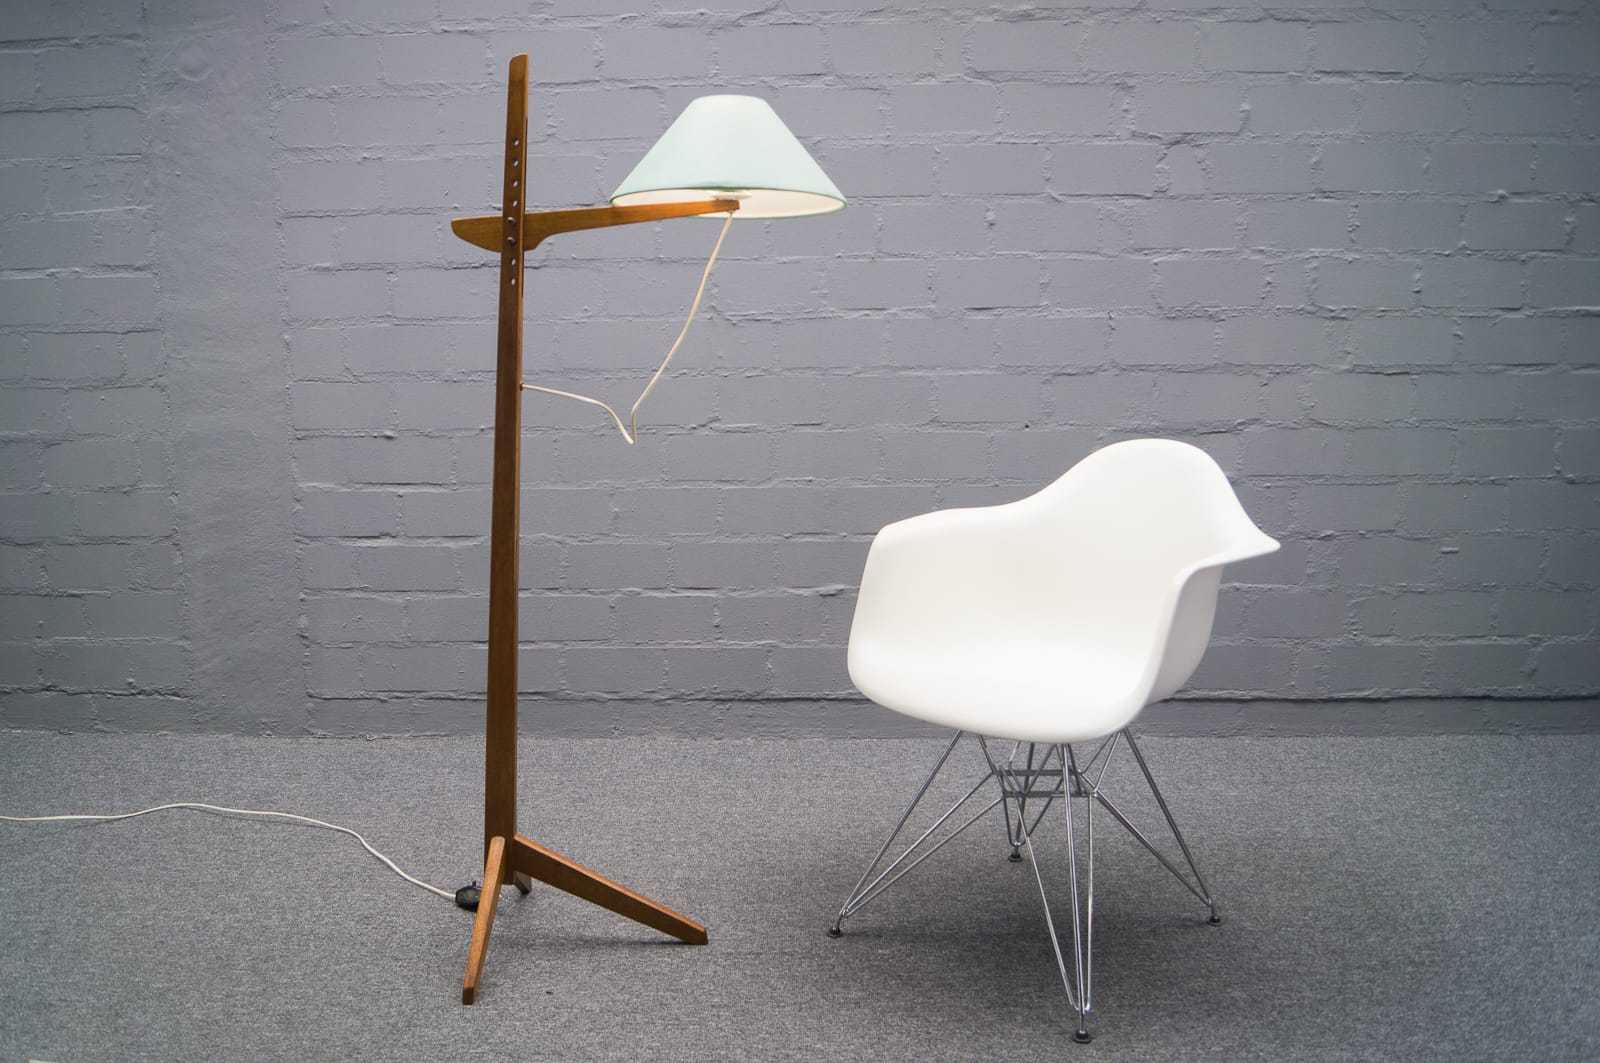 teak tripod lampe stehlampe floor lamp skandinavisch 60er 70er. Black Bedroom Furniture Sets. Home Design Ideas